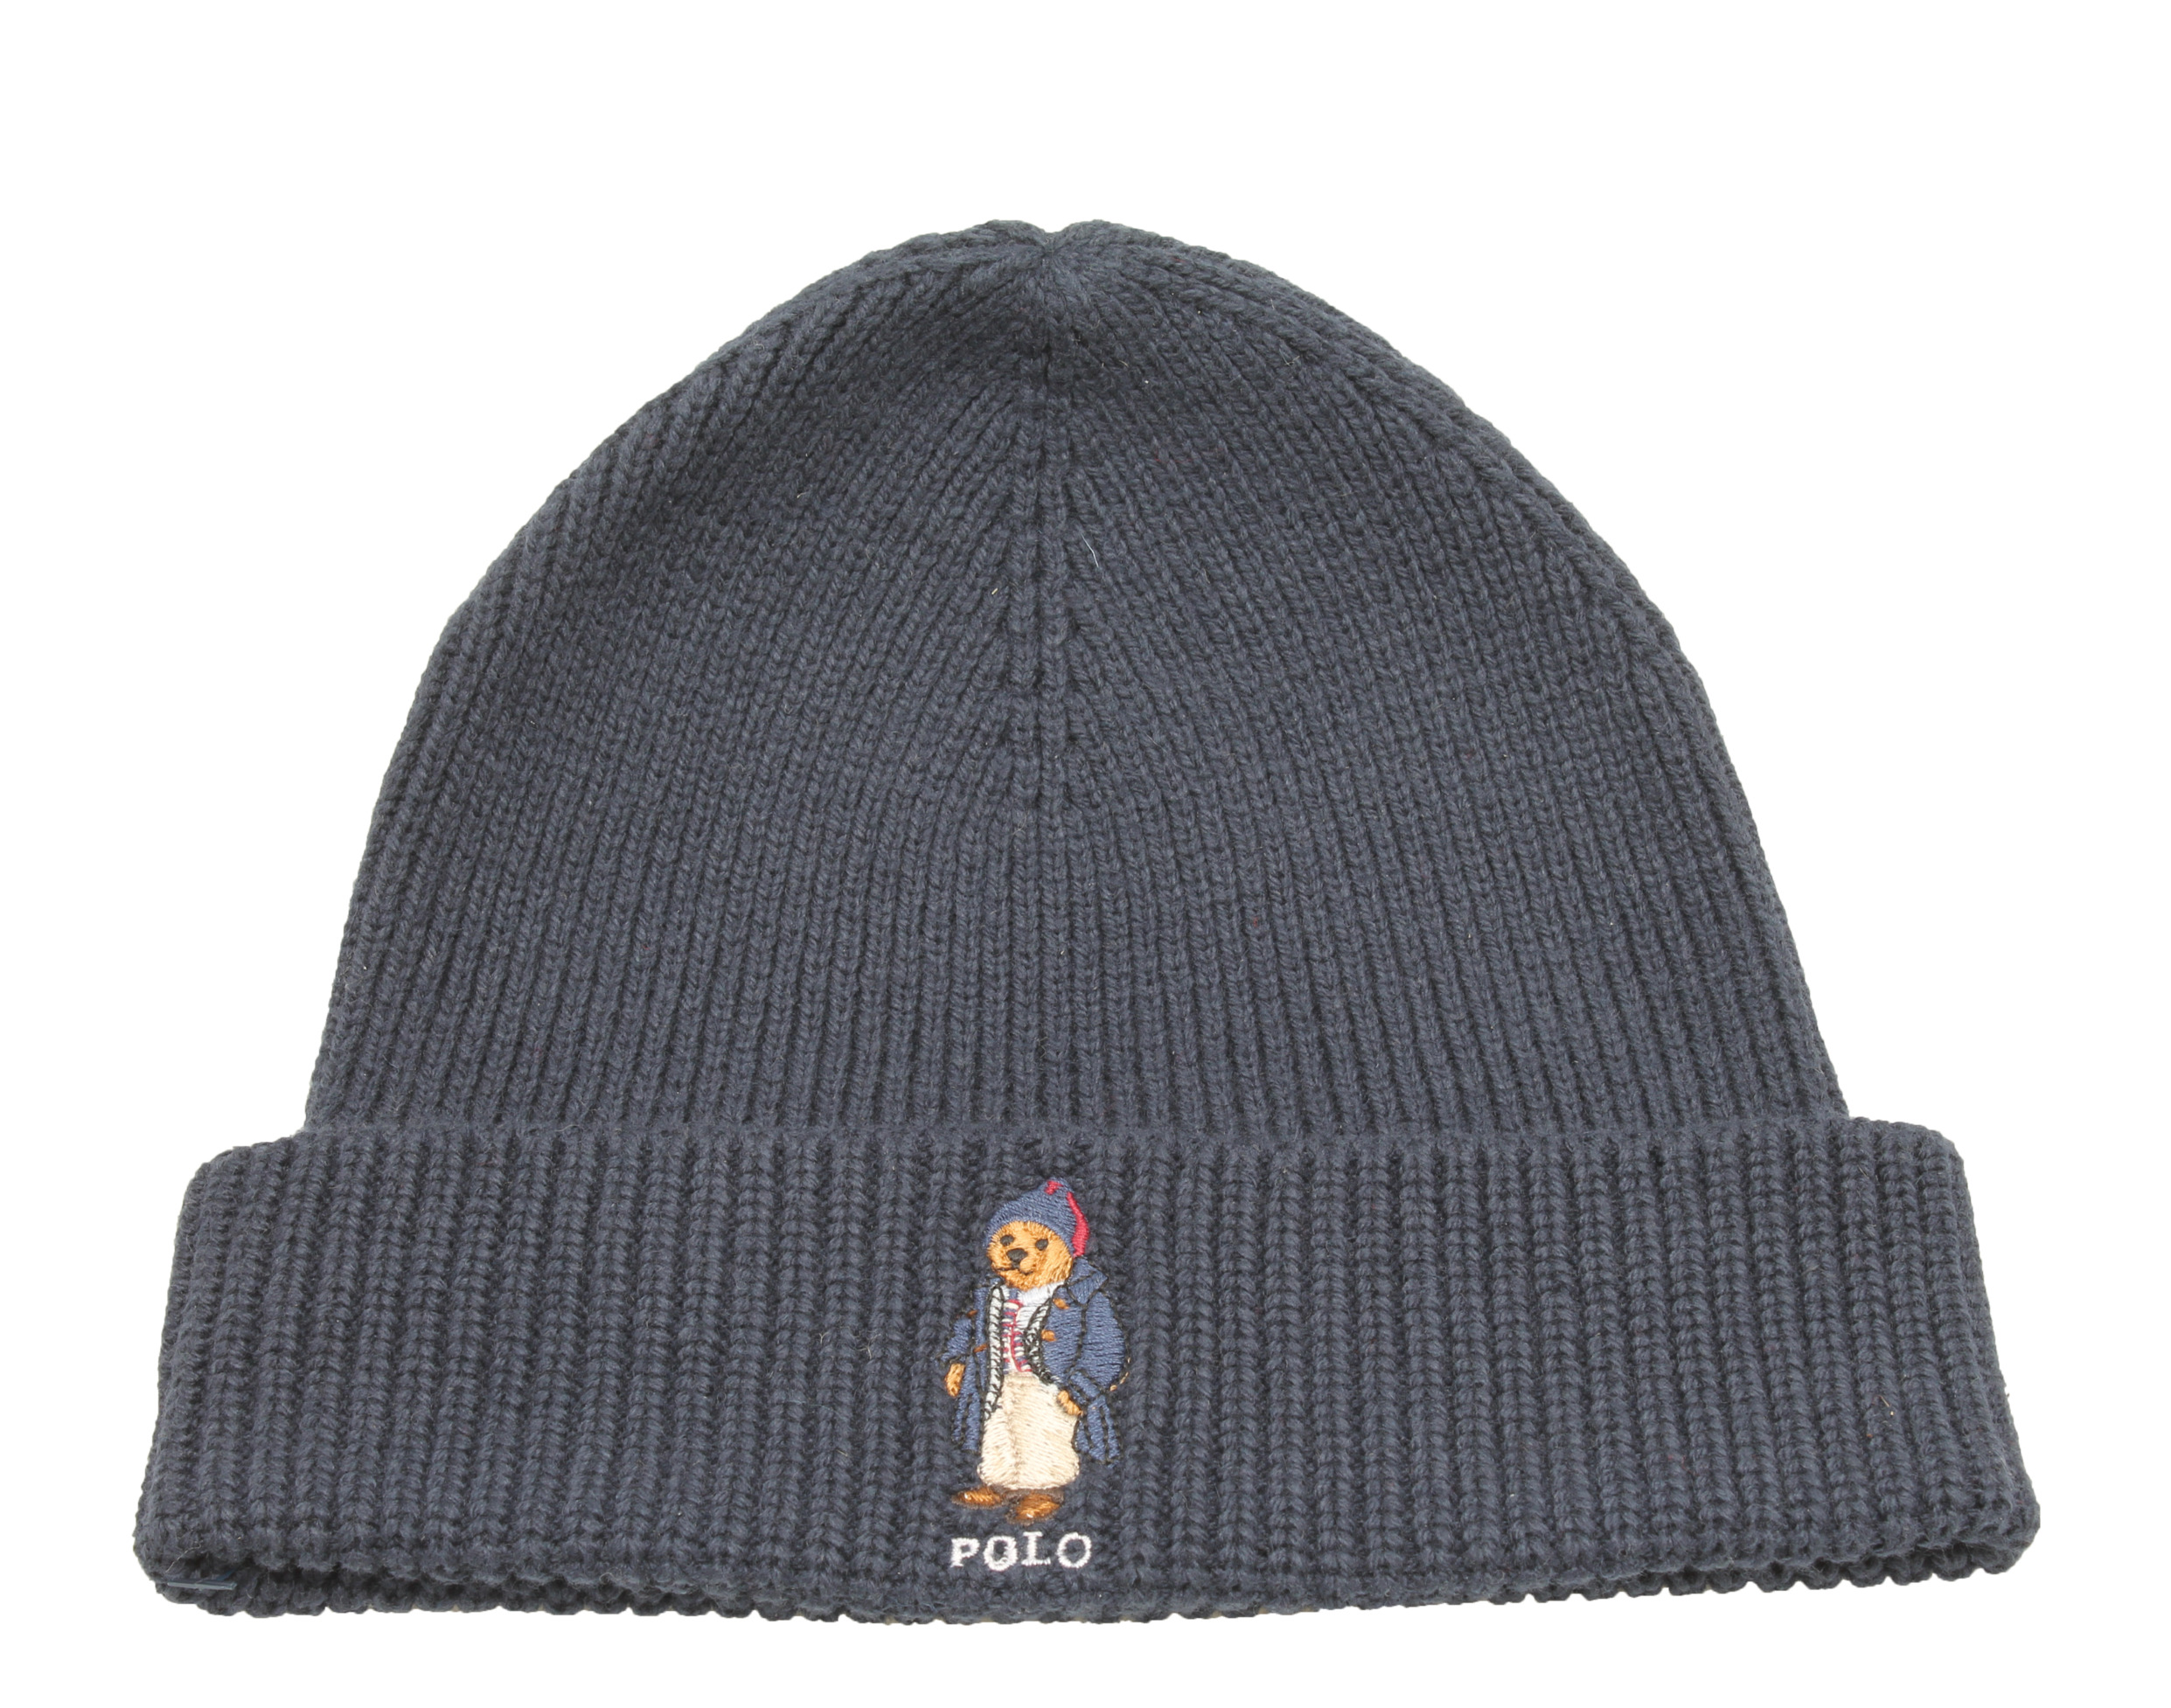 1df7f1d455d Polo Ralph Lauren - Polo Ralph Lauren Polo Bear Knit Navy Business Man  Scully Beanie Hat PC0111-434 - Walmart.com